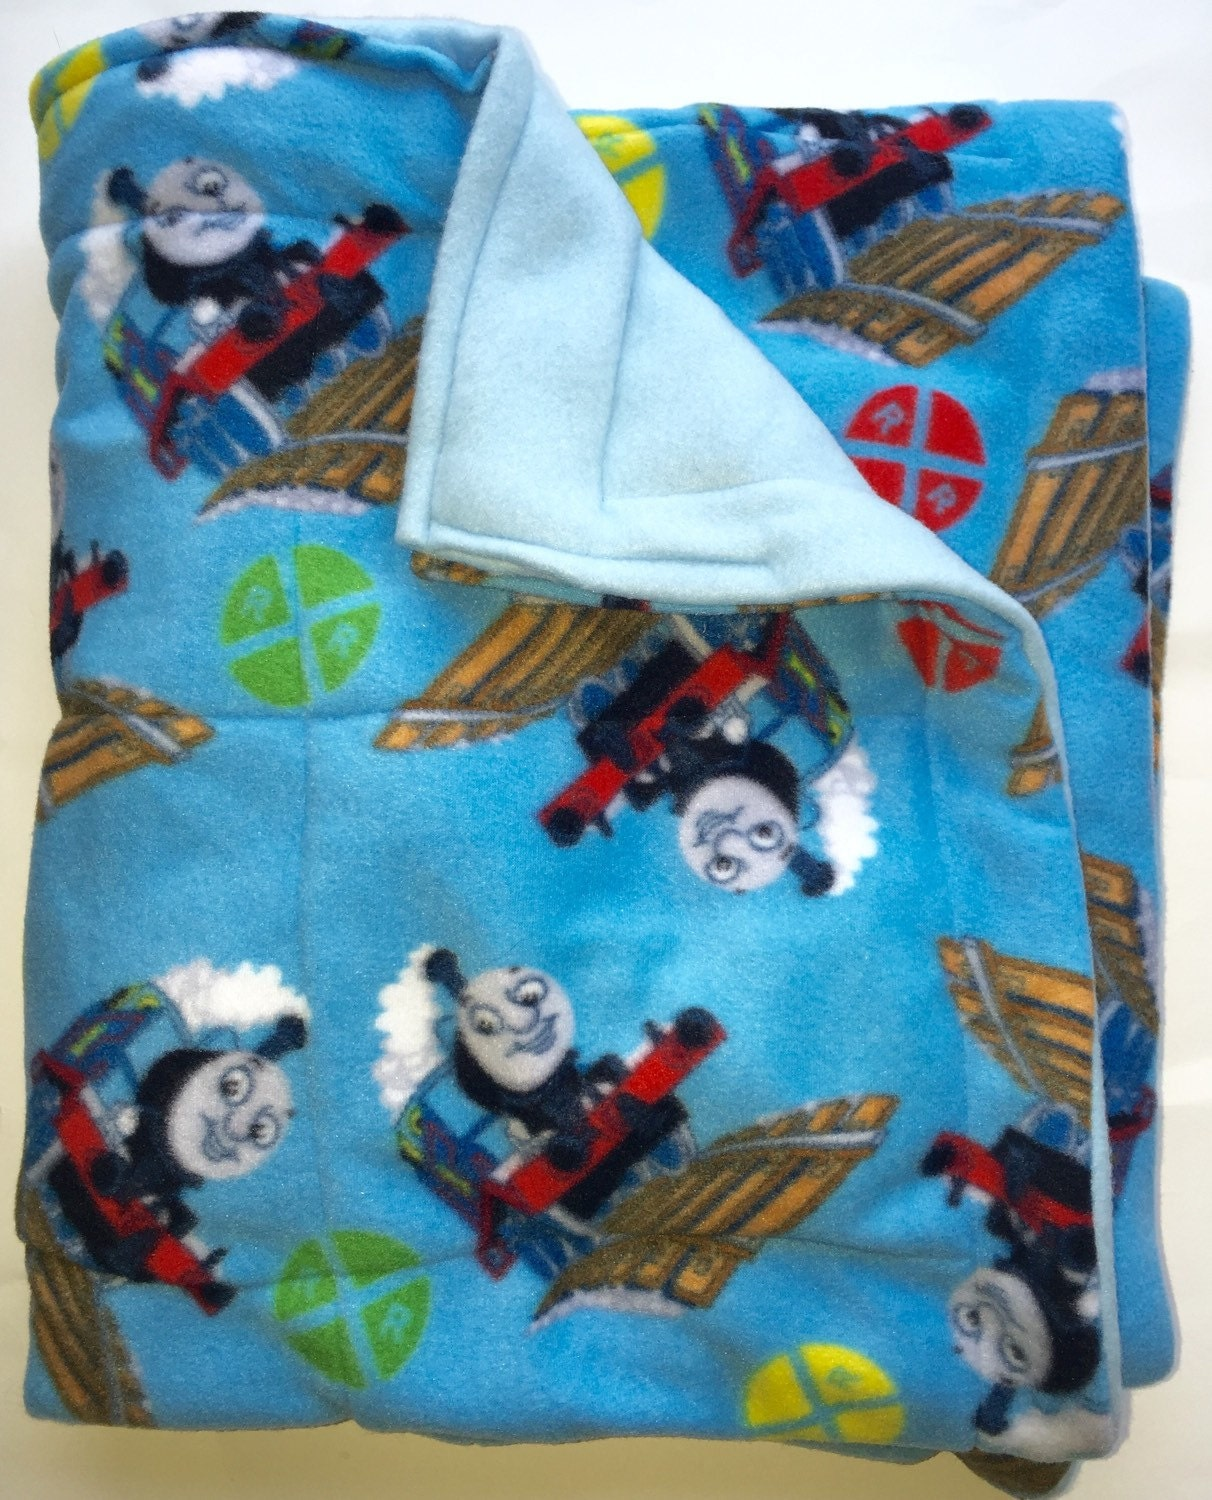 Sensory Young Child Weighted Blanket Thomas The Train 5 Lbs